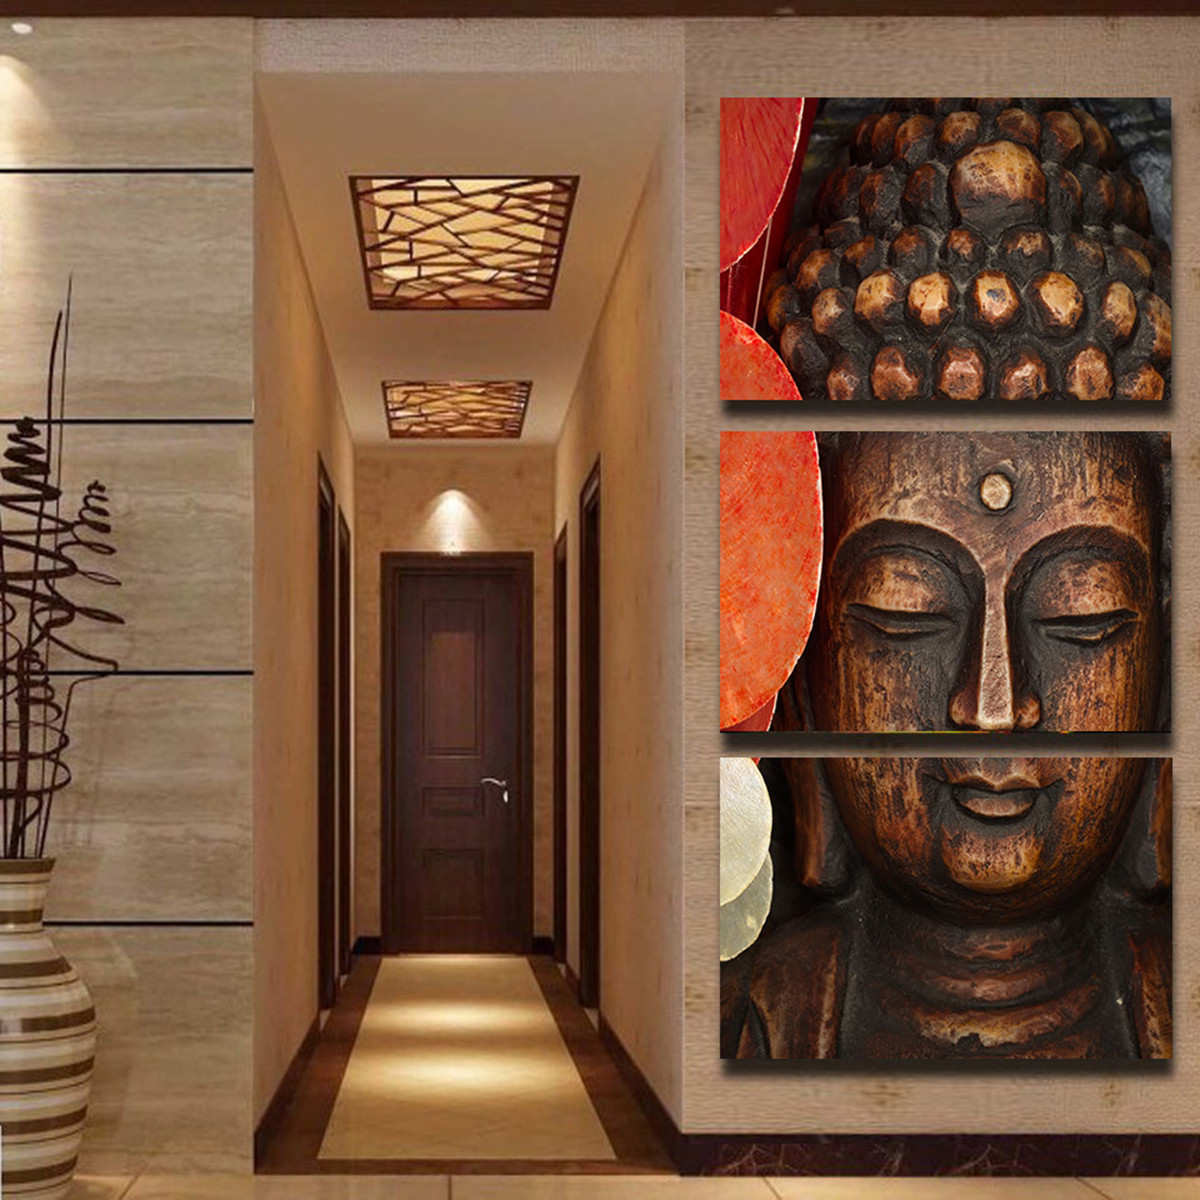 Buddha Wall Decor 3d buddha wall decor promotion-shop for promotional 3d buddha wall